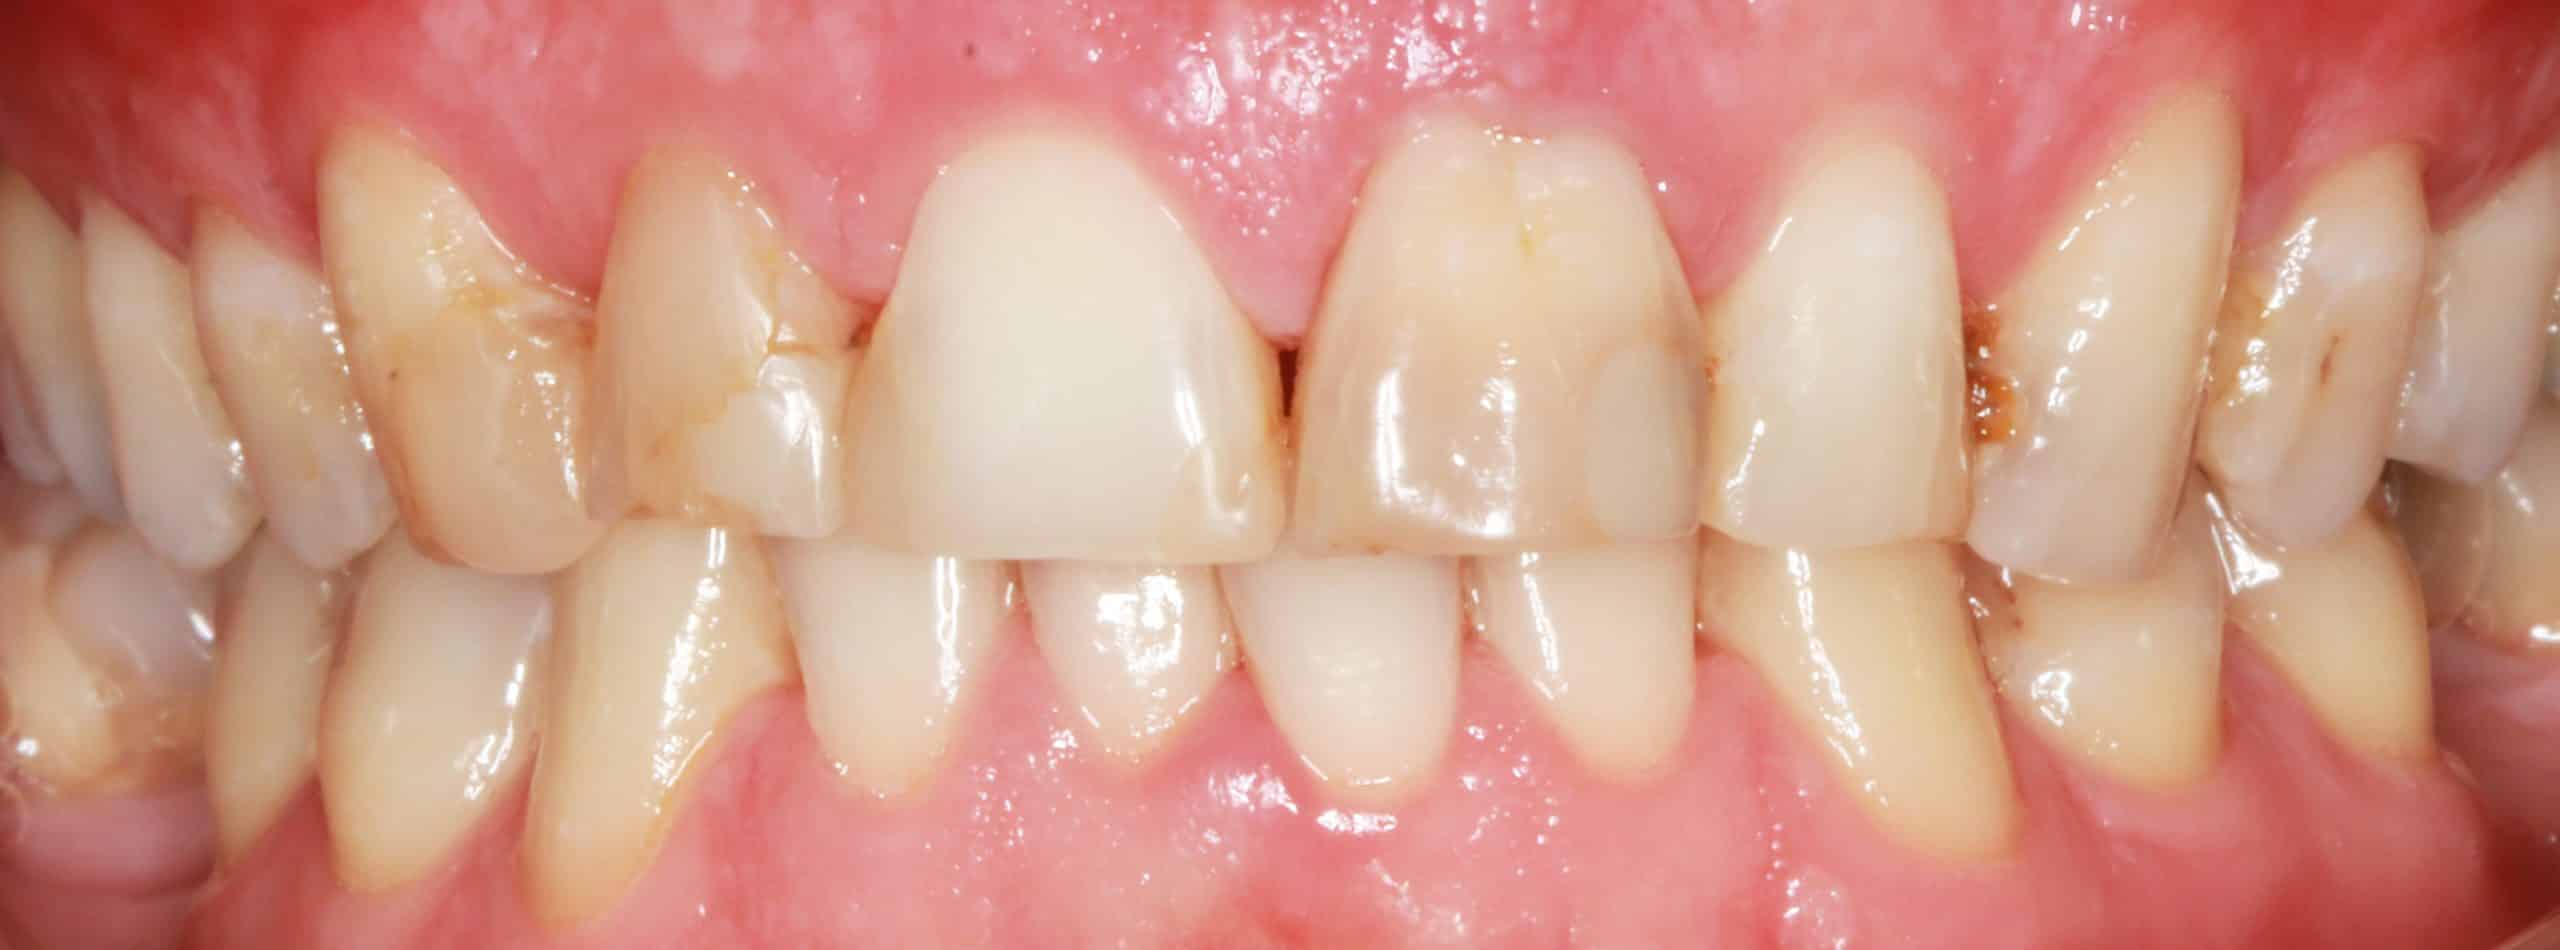 Porcelain Veneers Before Procedure